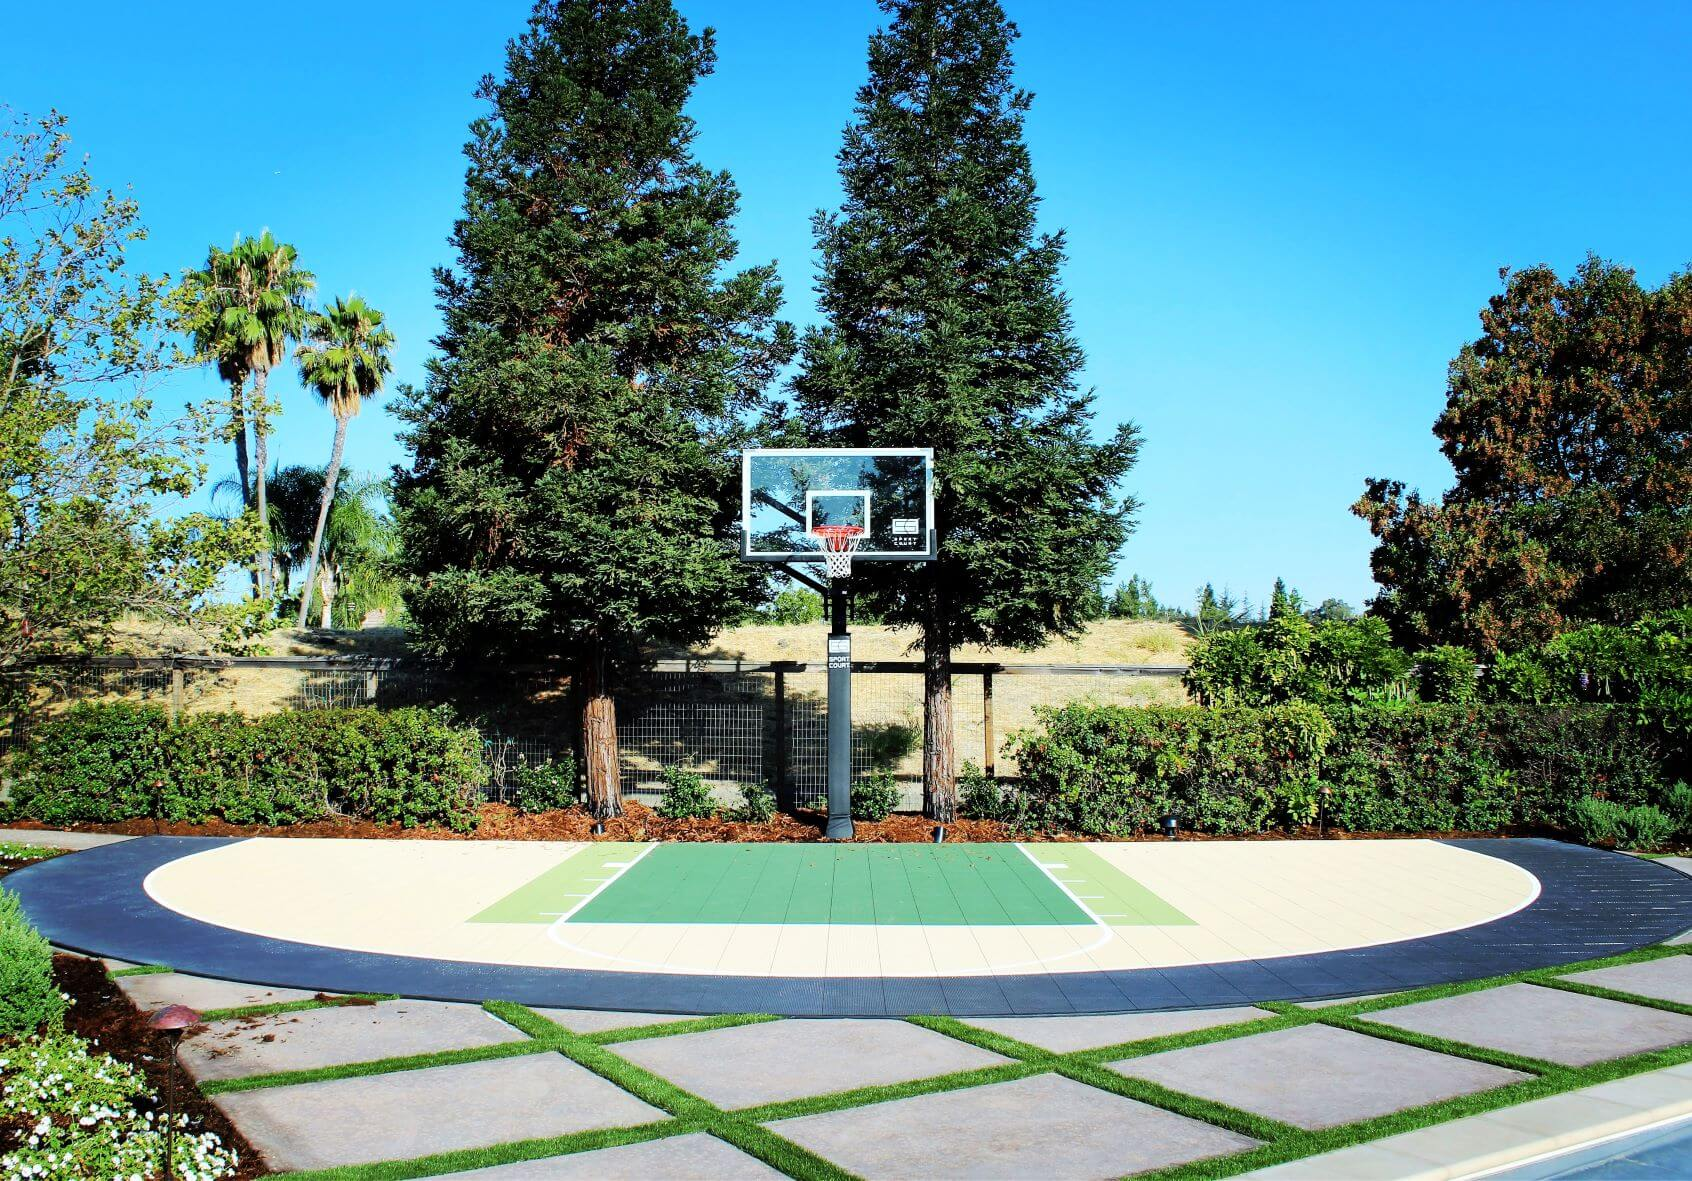 Sport Court Backyard Residential Basketball Court Custom Danville Alamo California